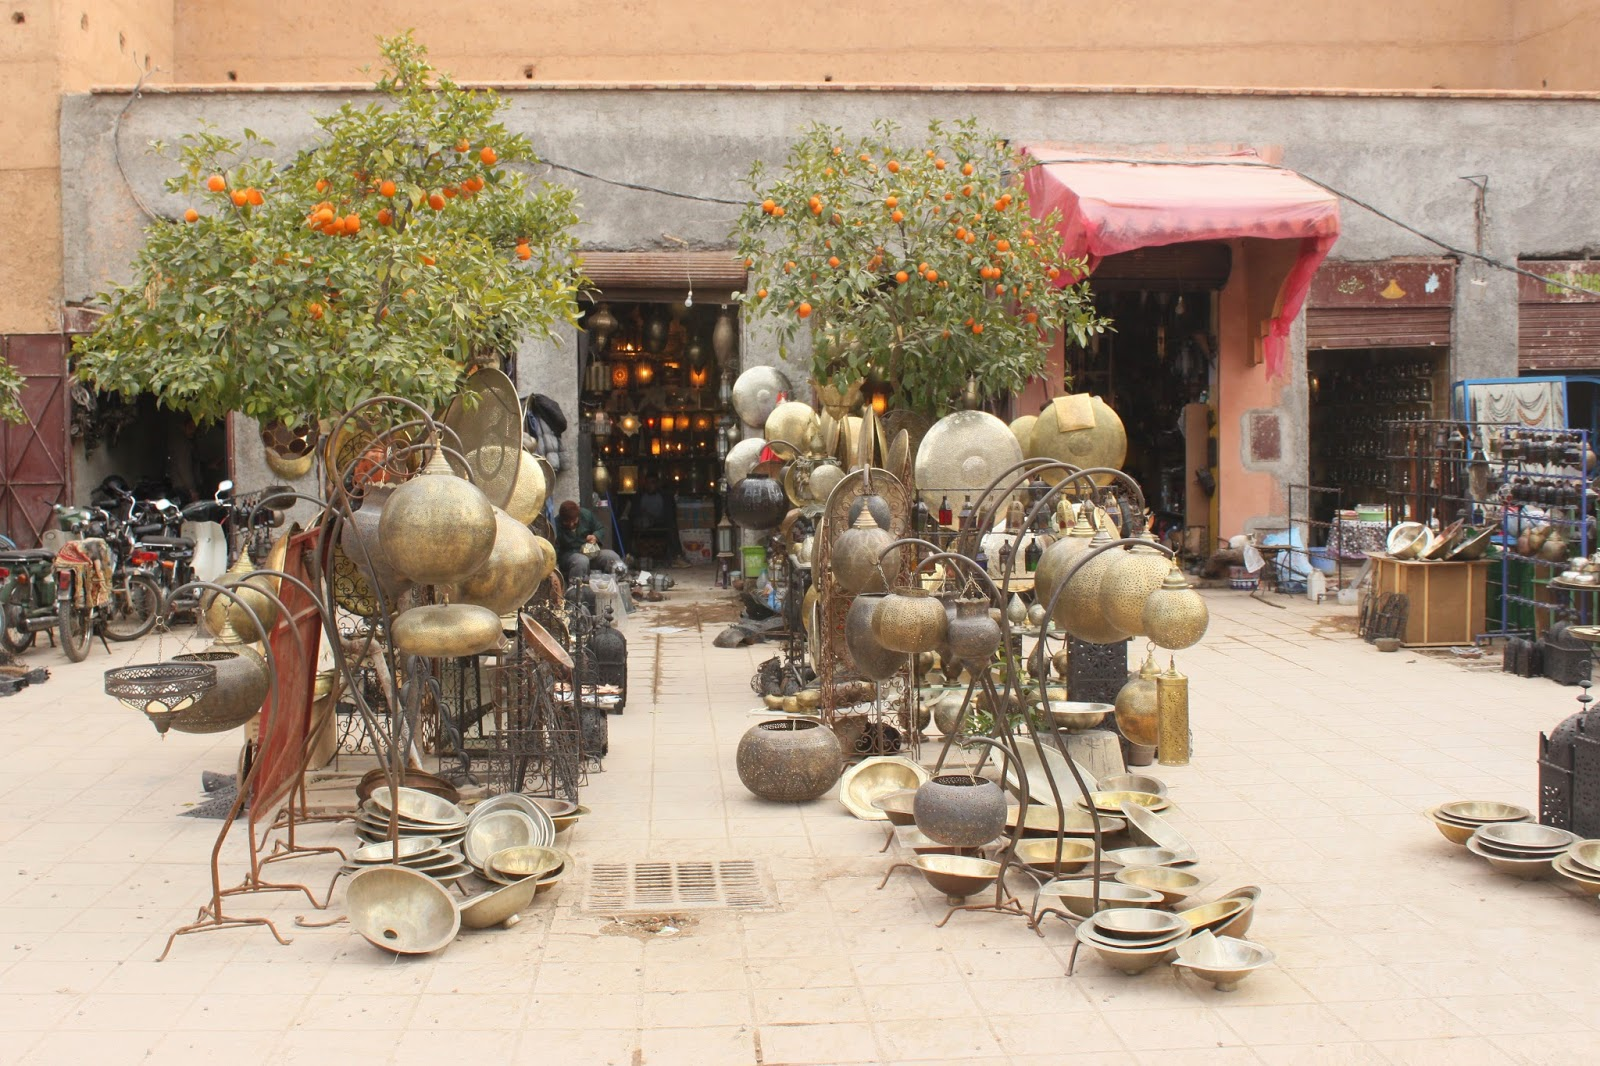 Mes Voyages Culinaires: Marrakech